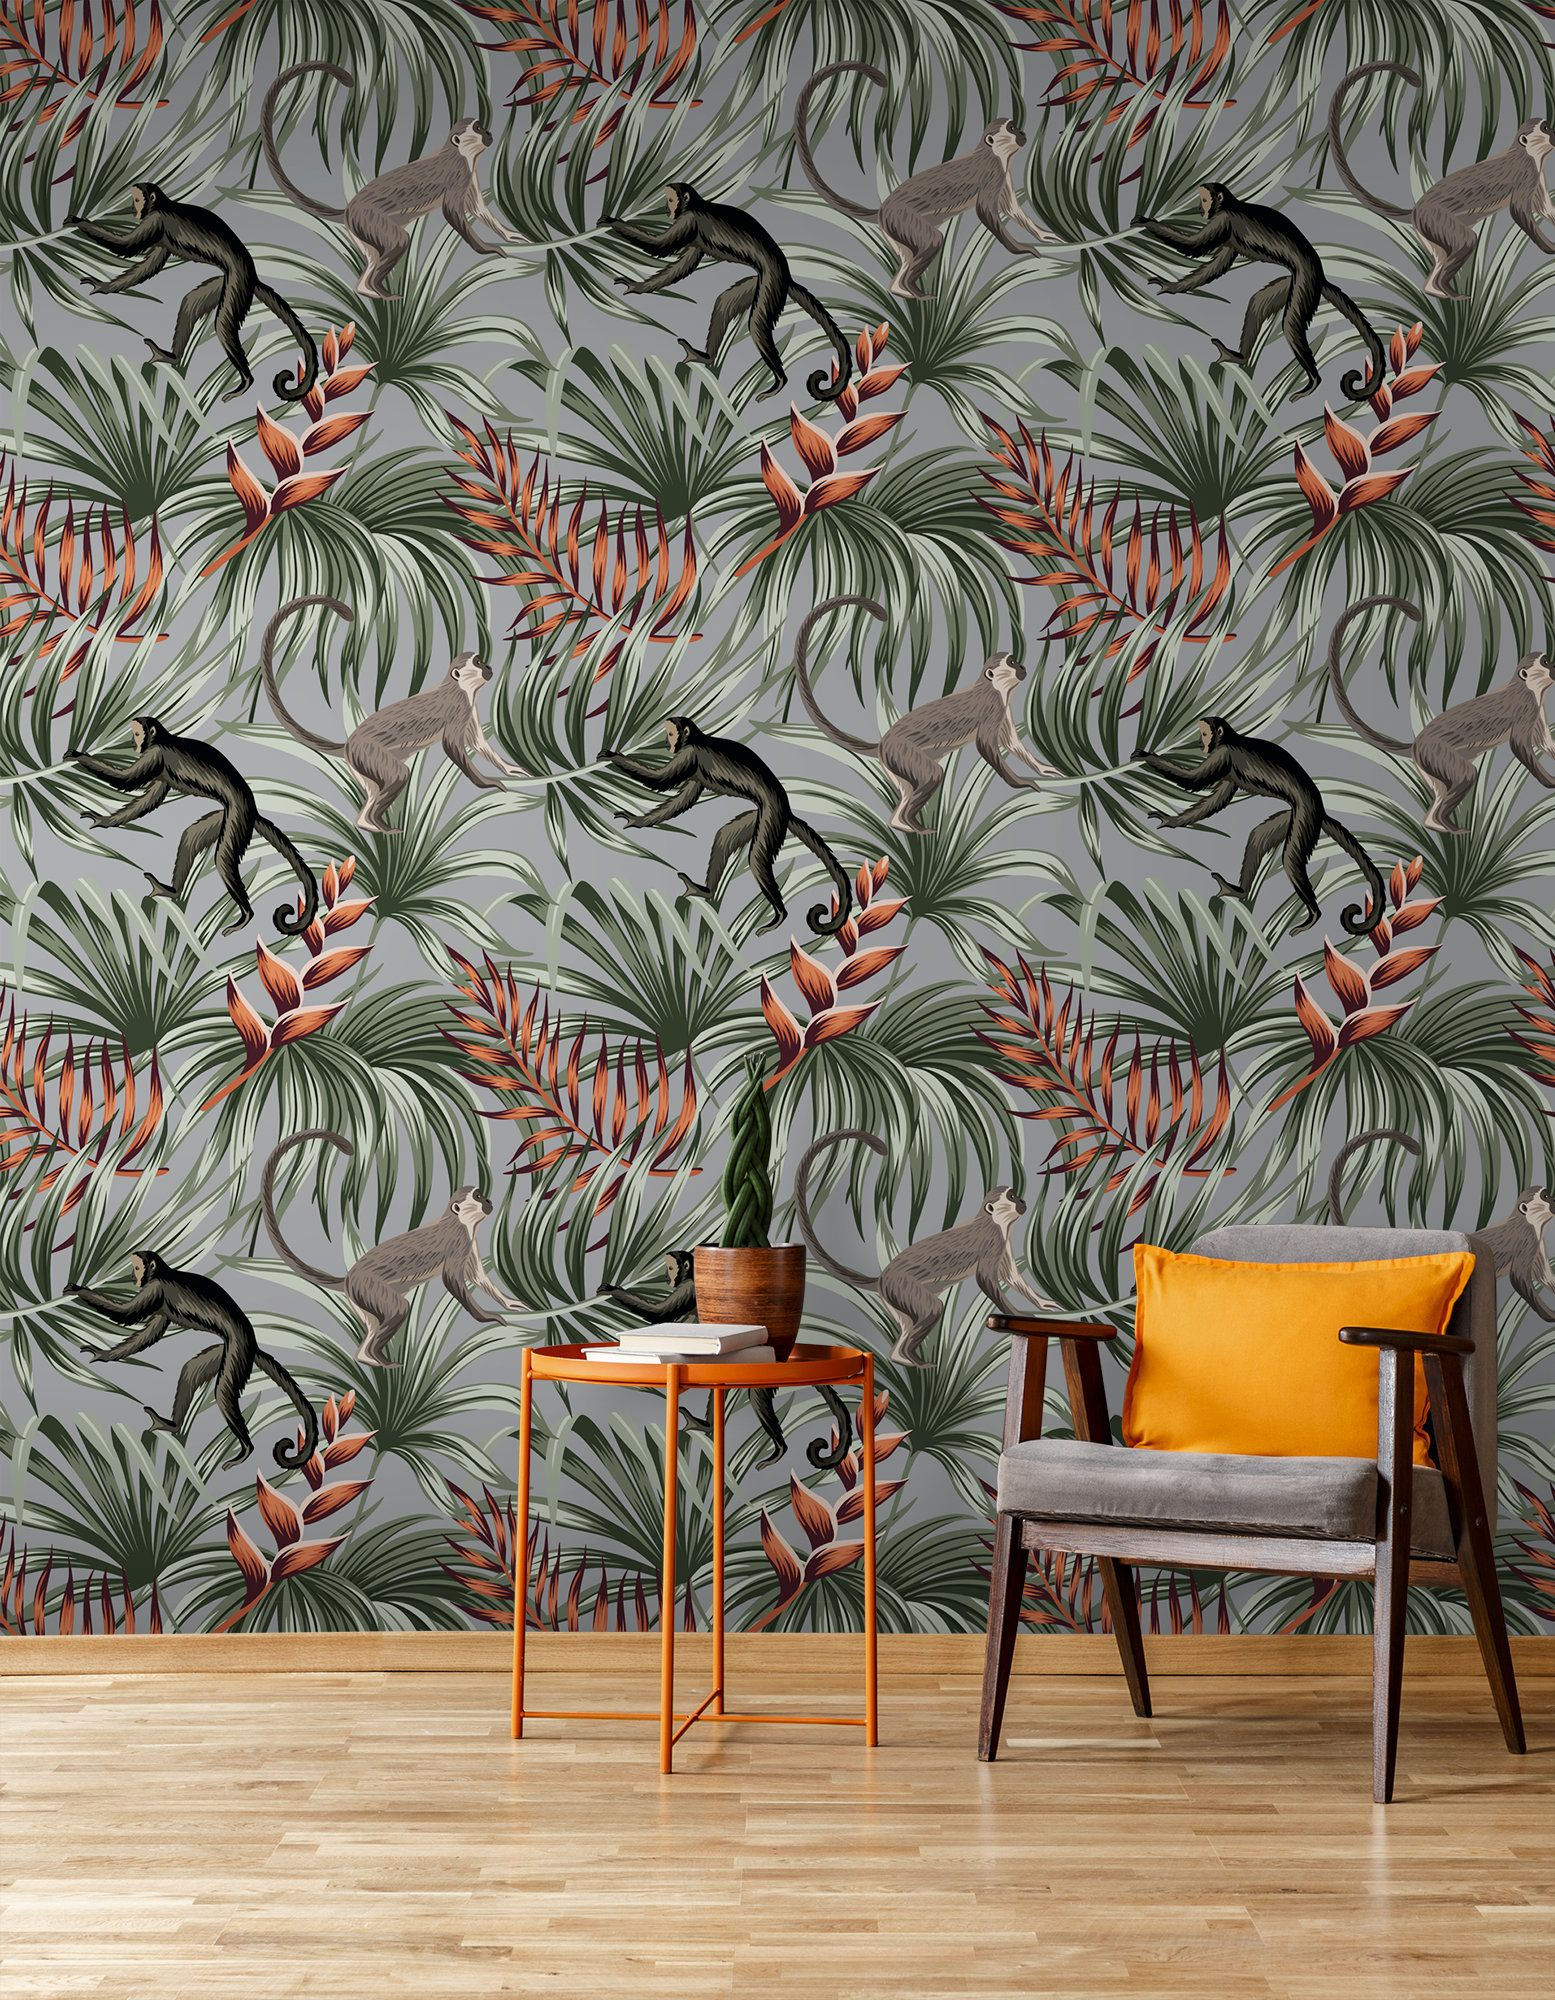 Pin On Vintage Art Wallpapers